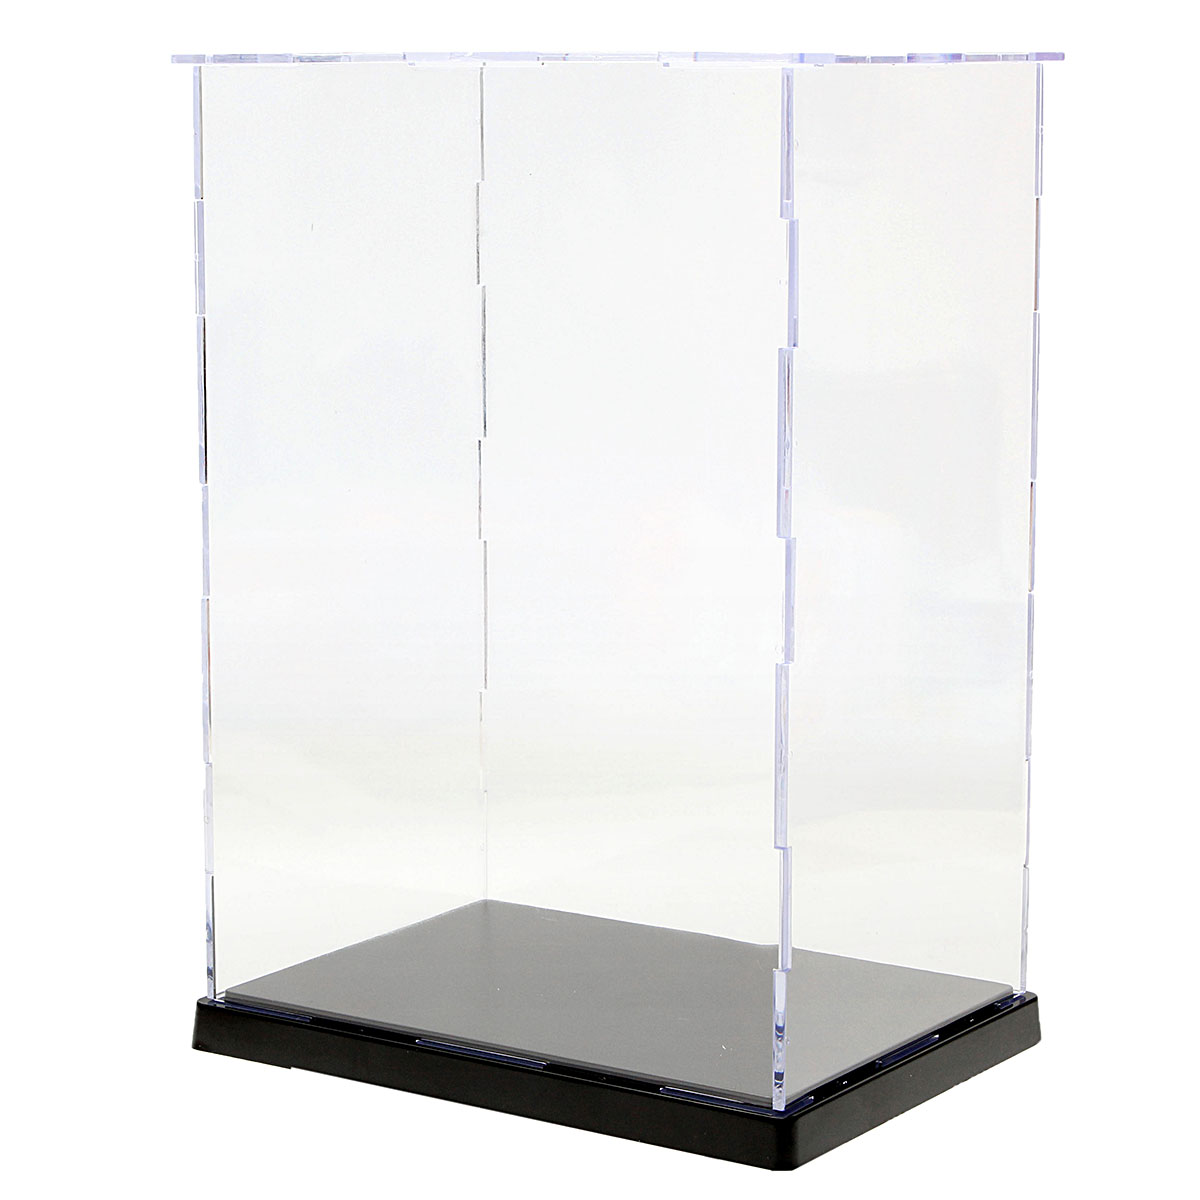 19x14x26.5cm Clear Acrylic Display Show Case Box Plastic Dustproof Protection Tray